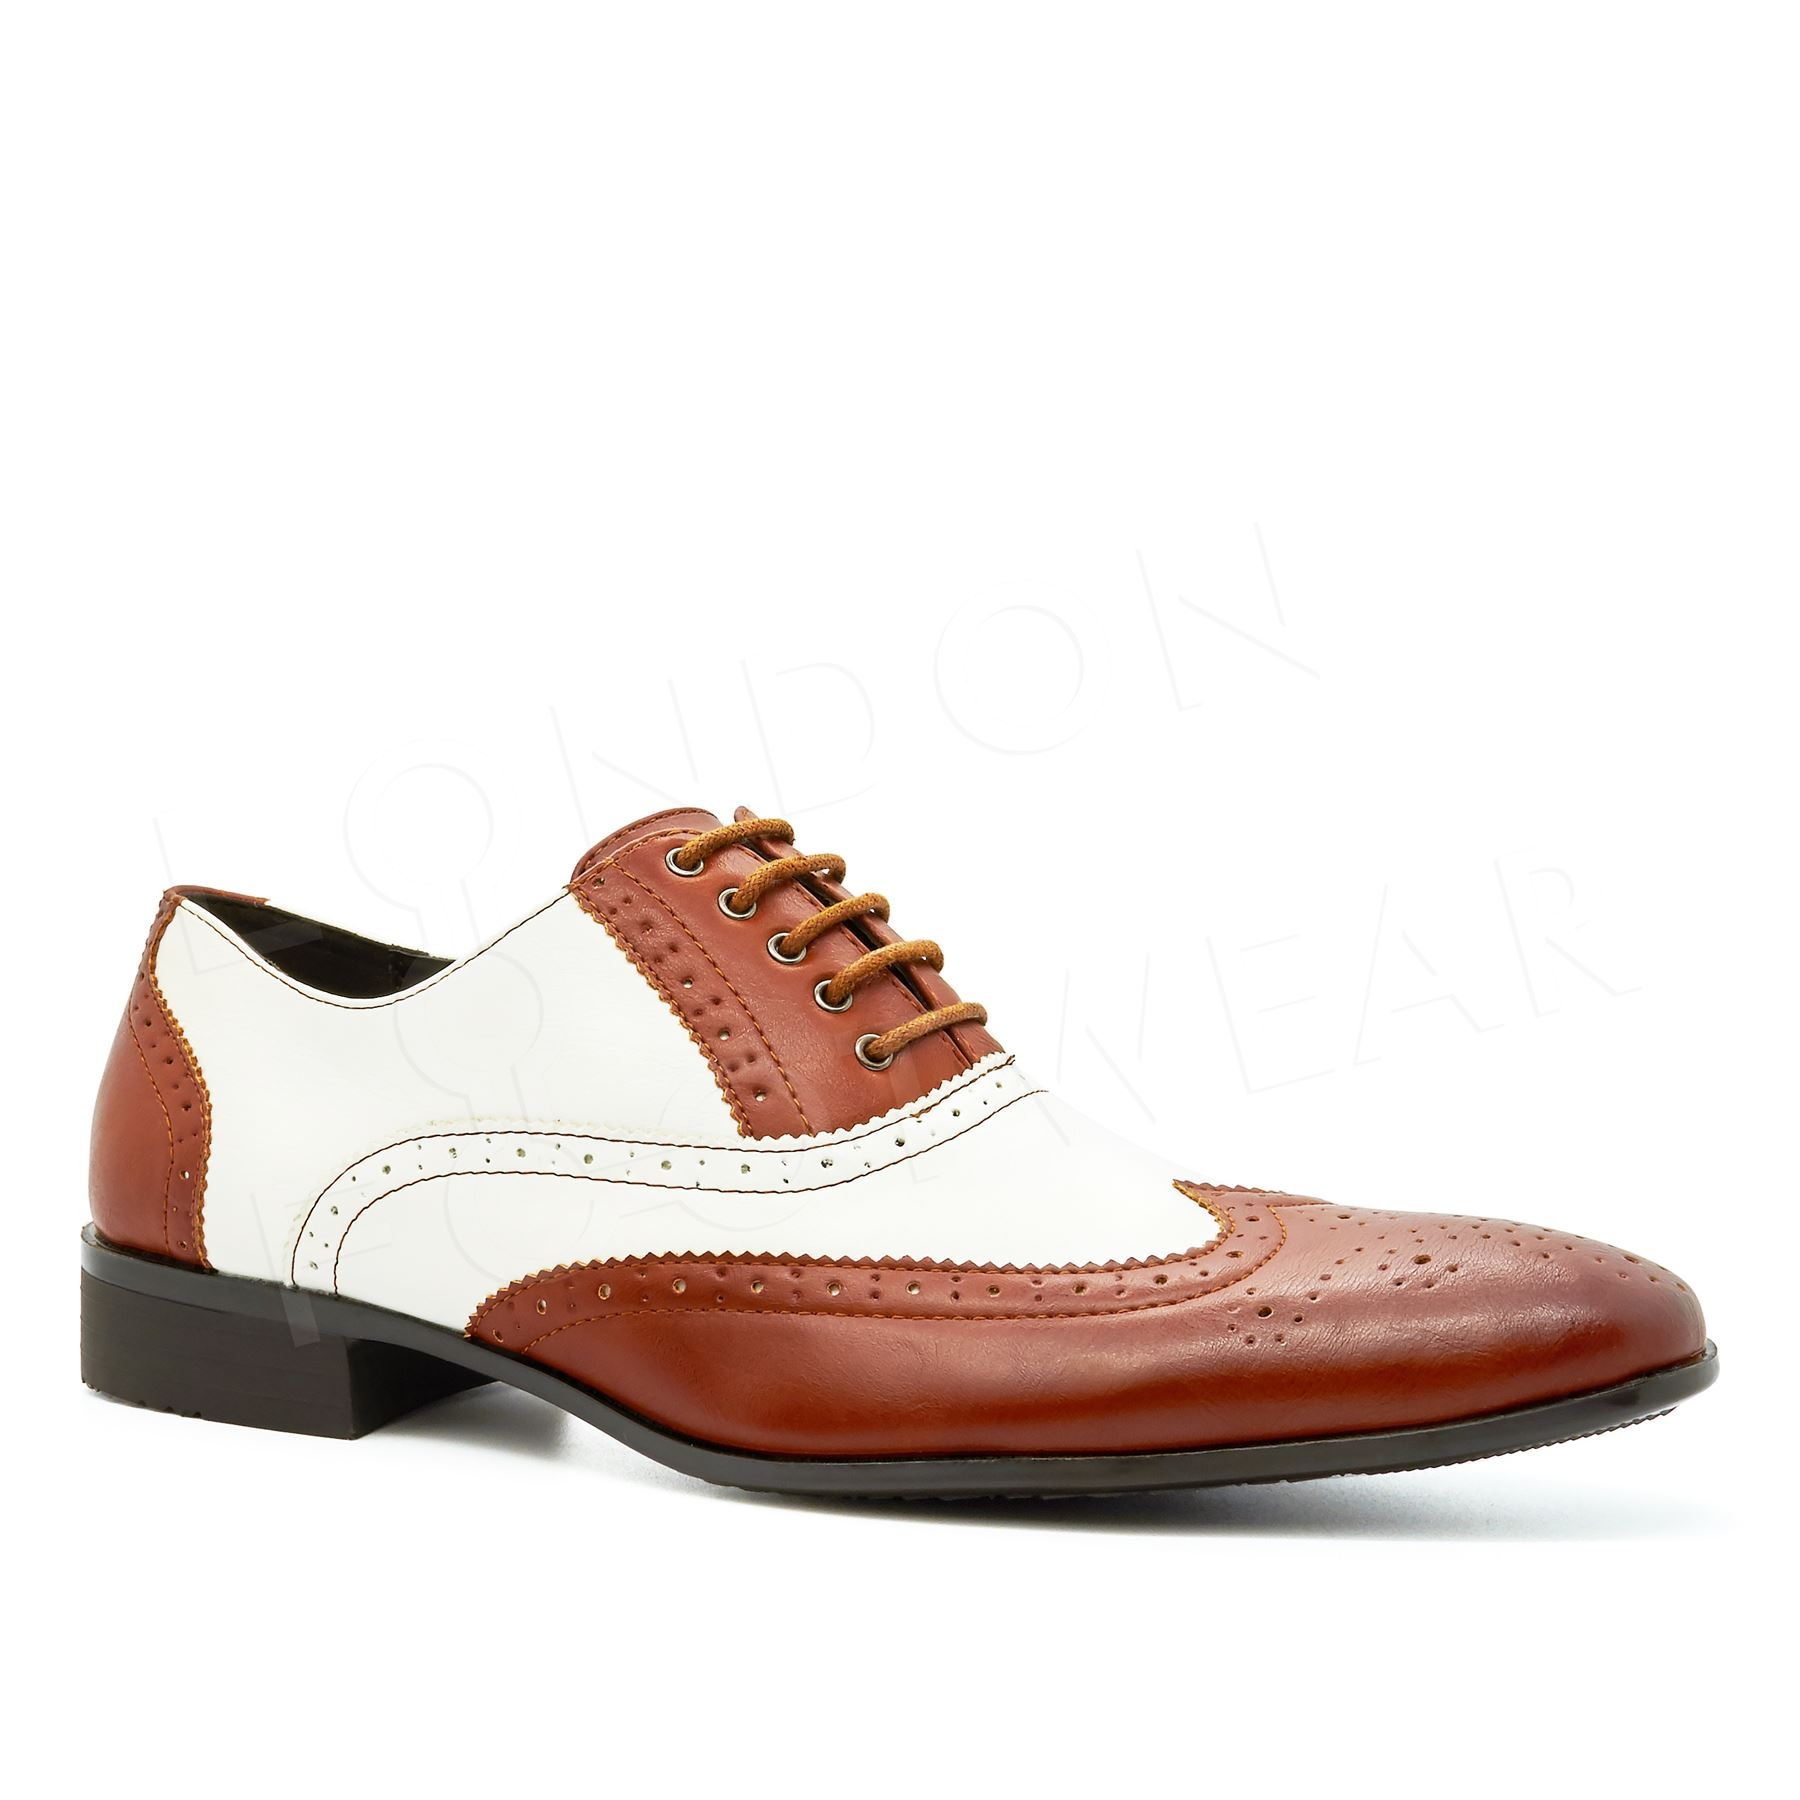 Oxford Two Tone Tan And Black Shoes Mens